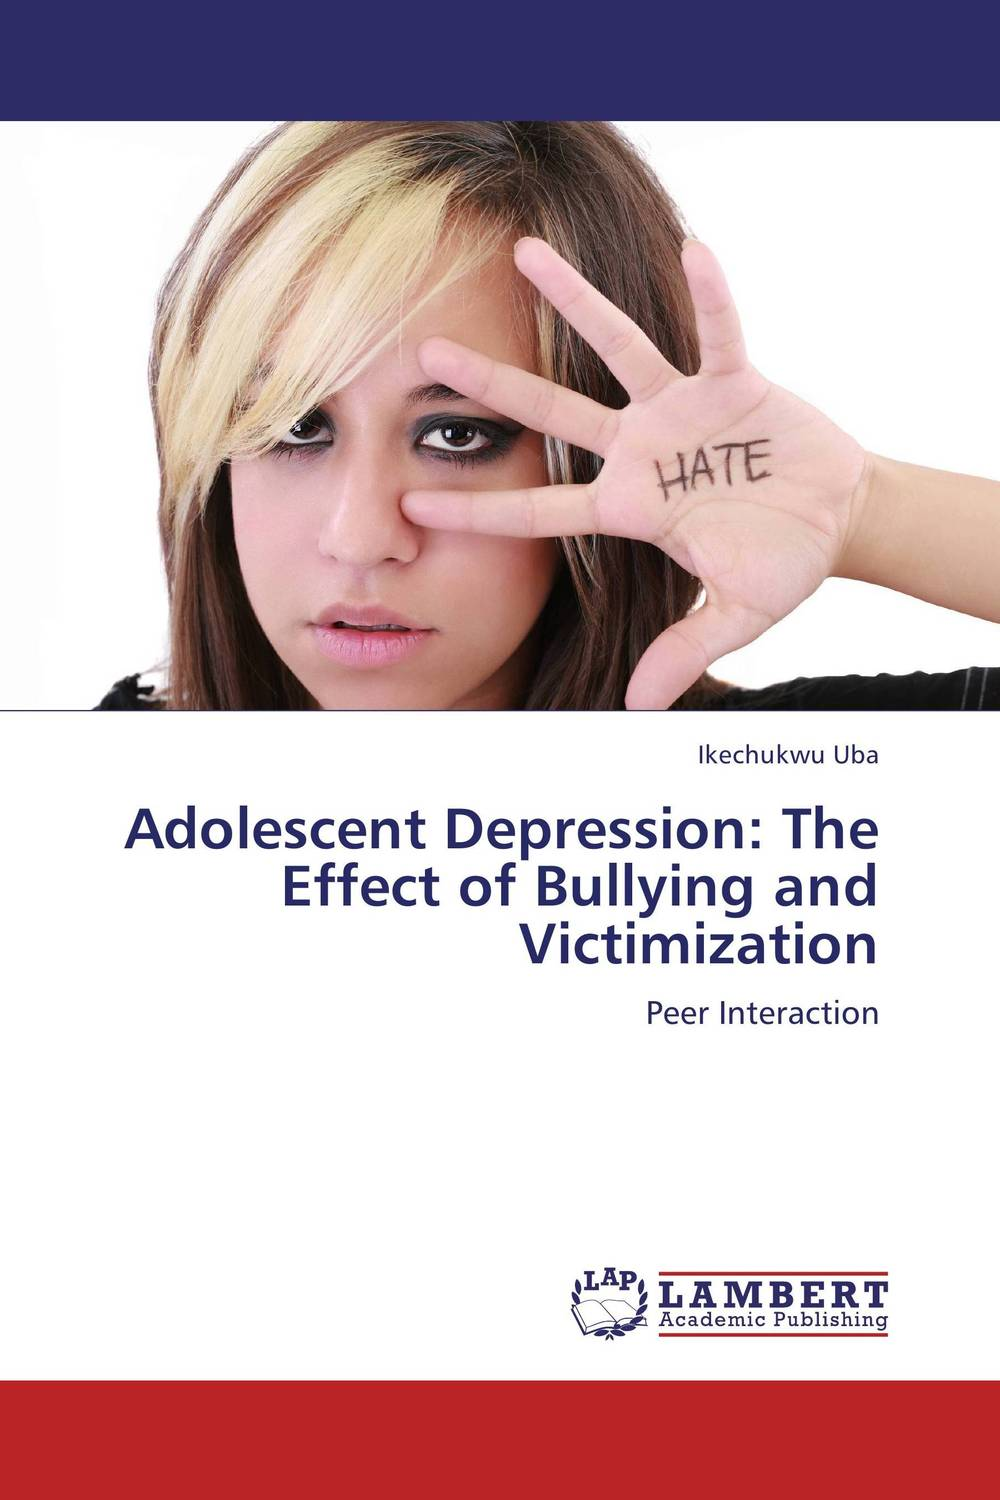 Adolescent Depression: The Effect of Bullying and Victimization adolescent